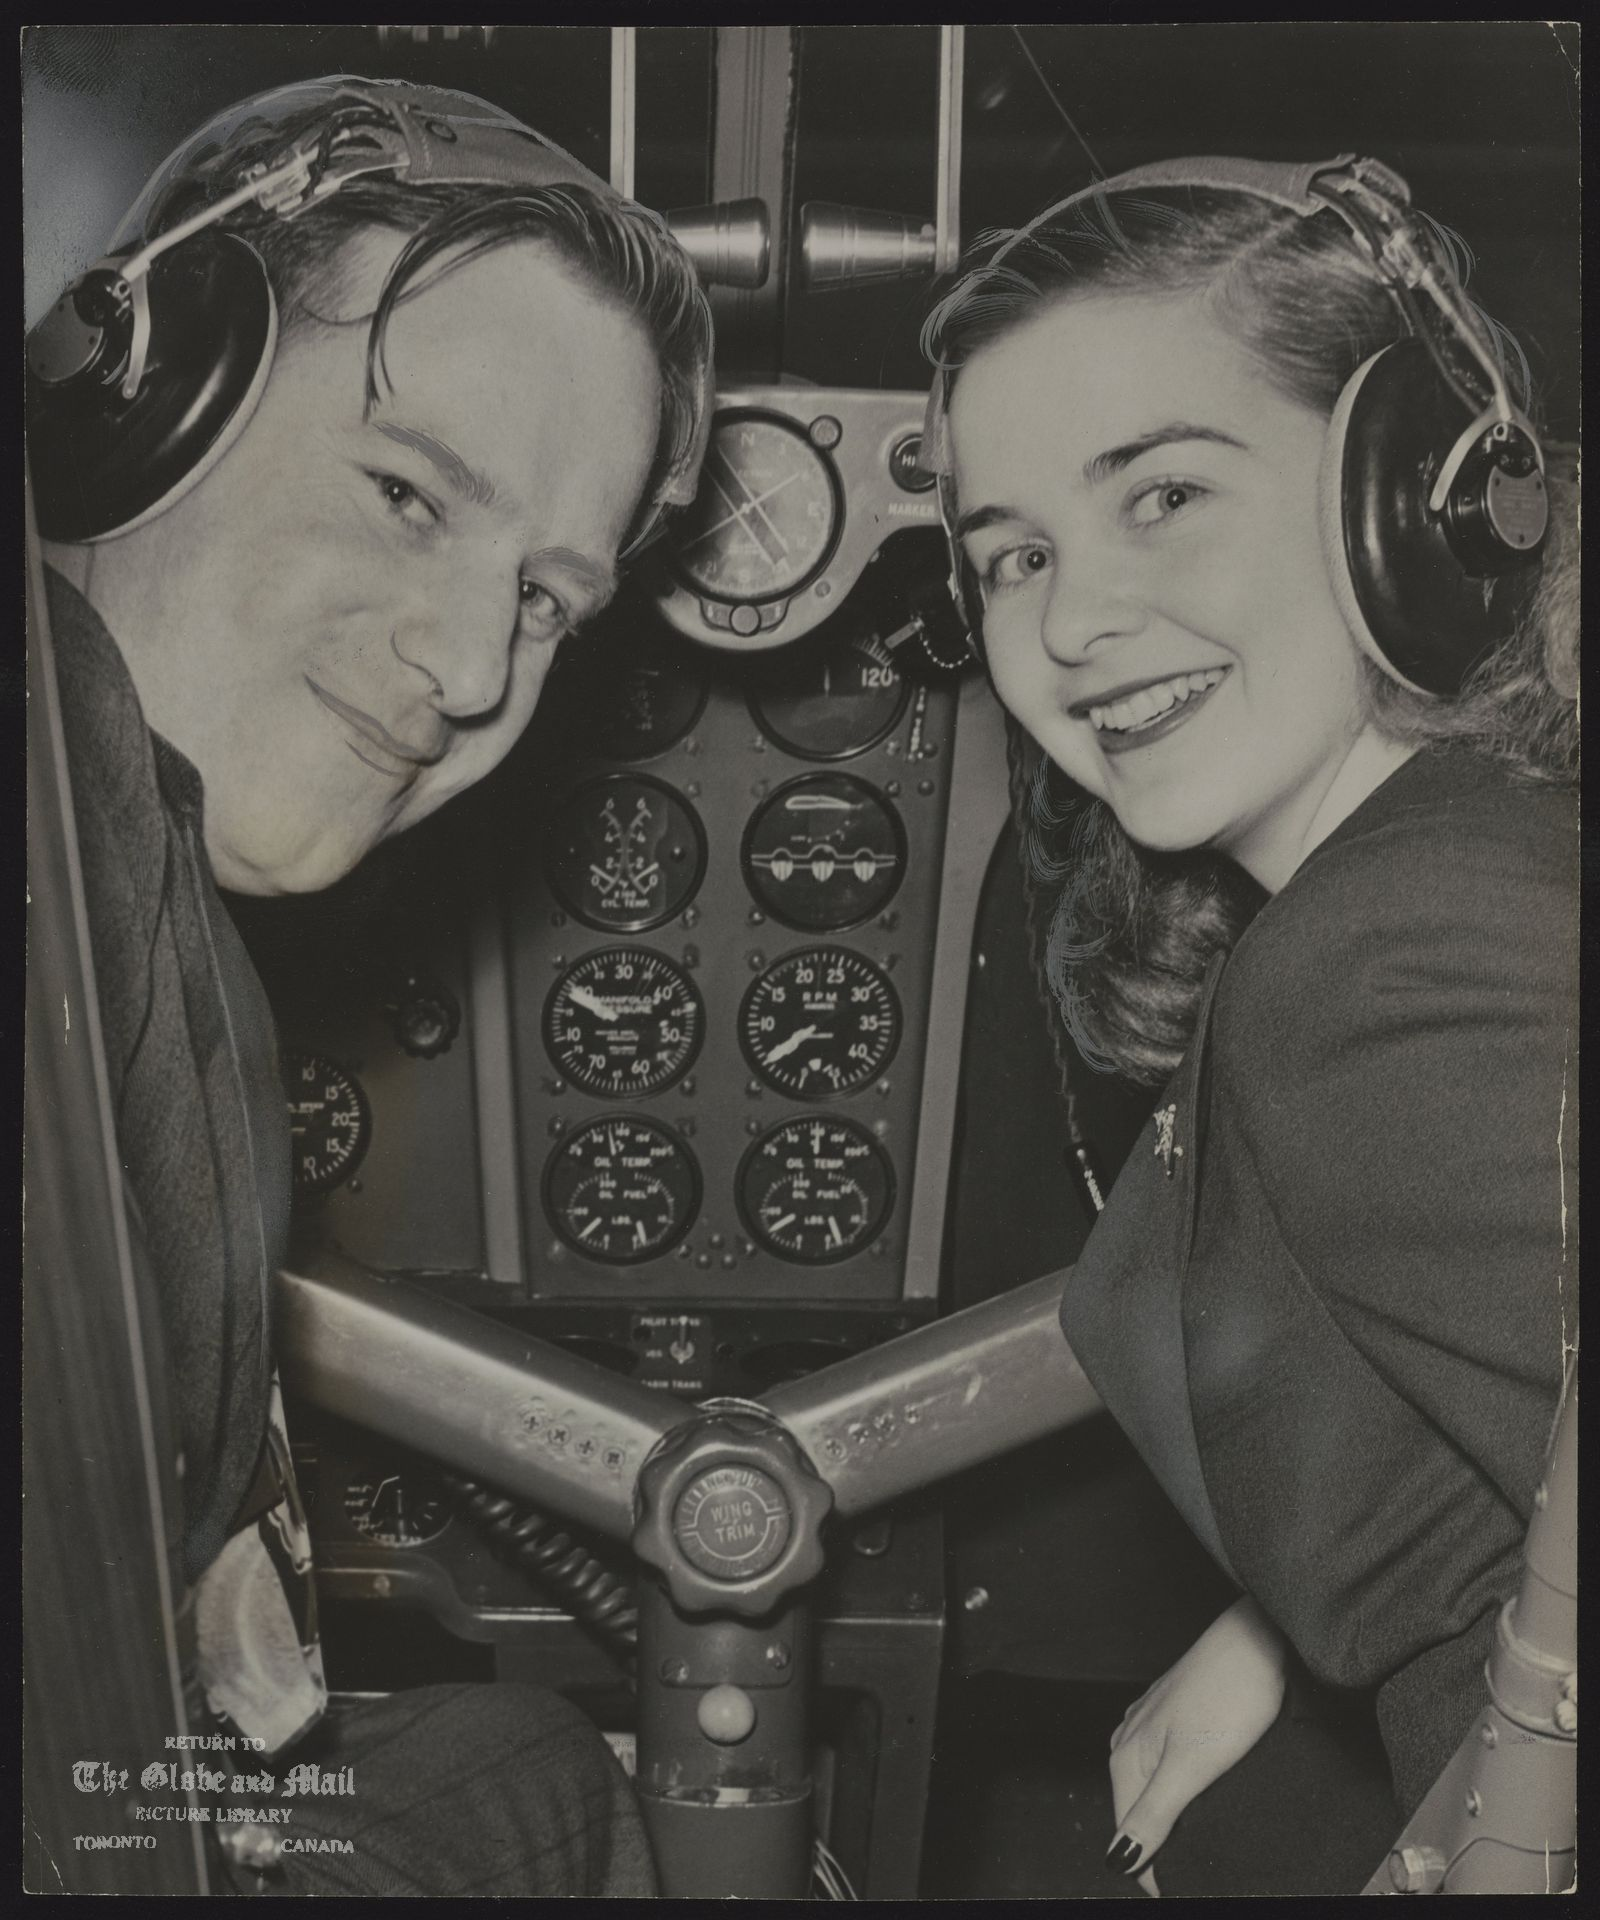 Through she hasn't received her private pilot's license yet, Barbara Ann Scott, [ladies world champion] centre of an Olympic Games controversy, had done enough flying to know what it was all about when she sat in the co-polot's seat of The Globe and Mail plane yesterday. with her is pilot Bill poag.